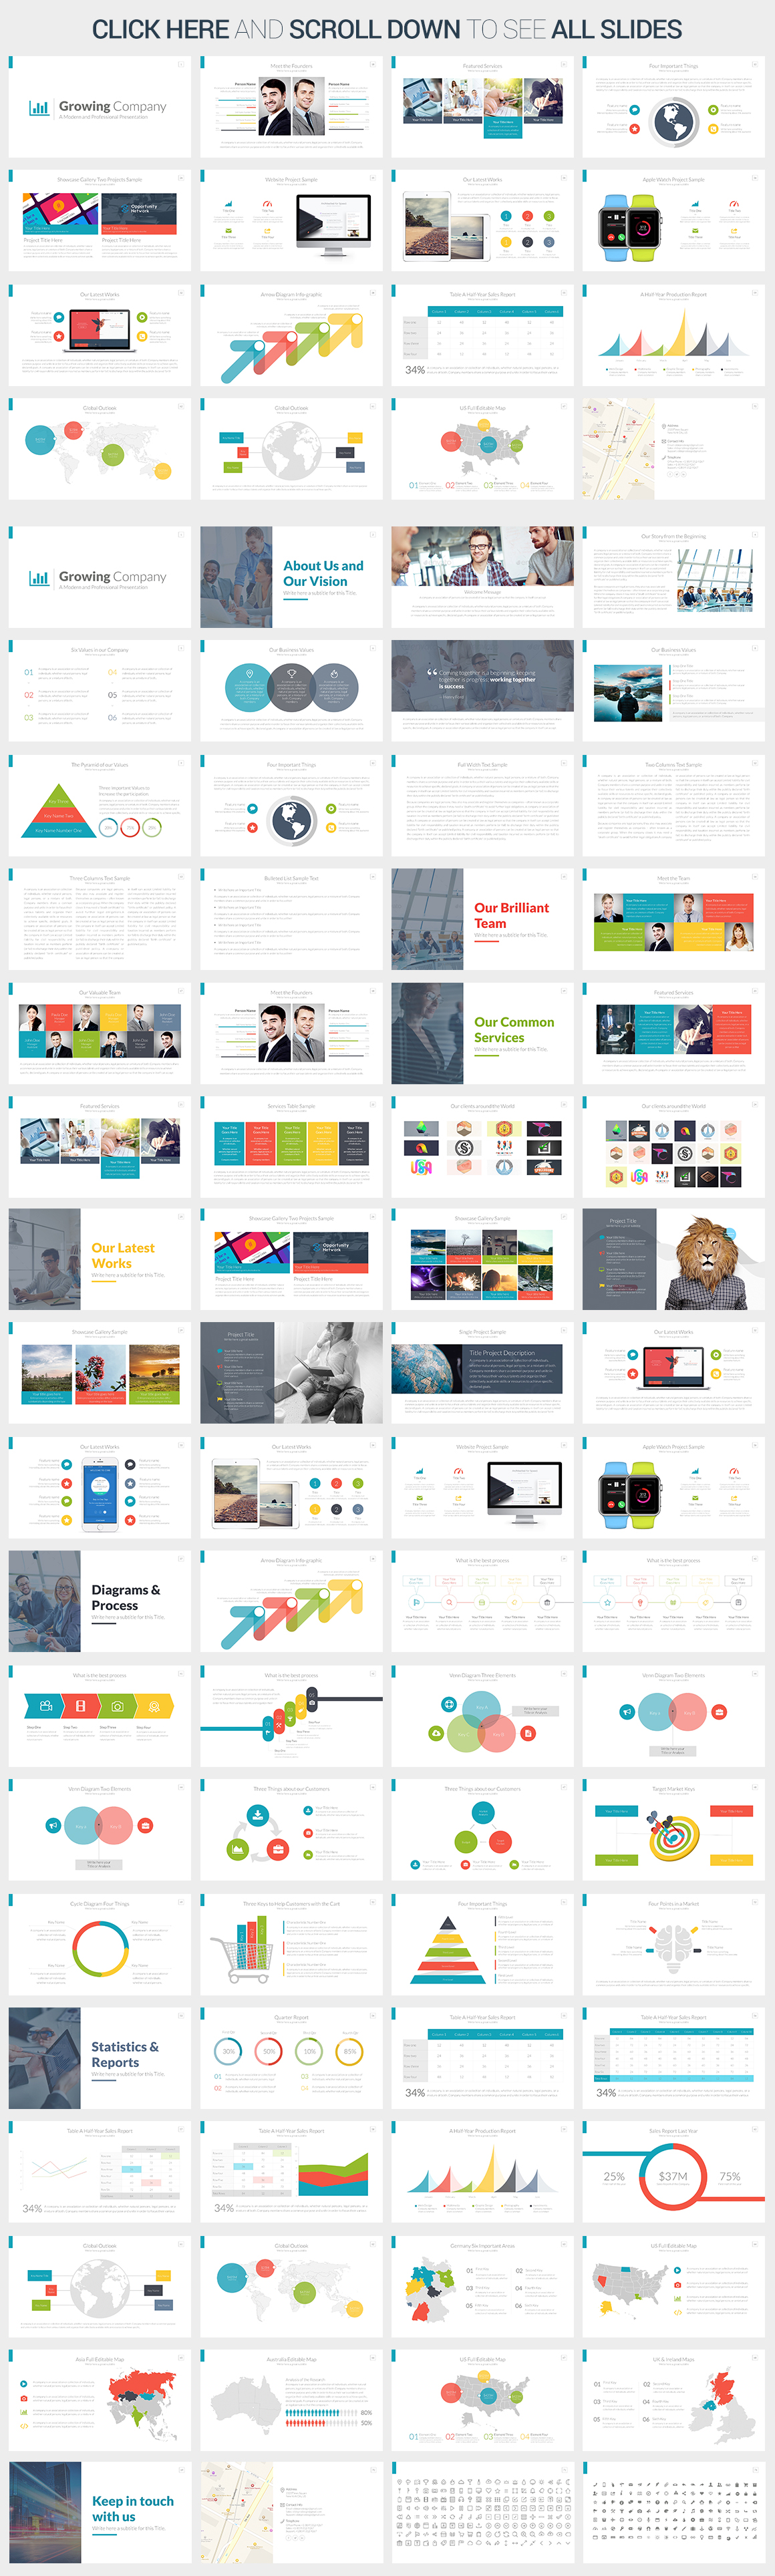 Growing Company Powerpoint Template By Slidepro On Creative Market